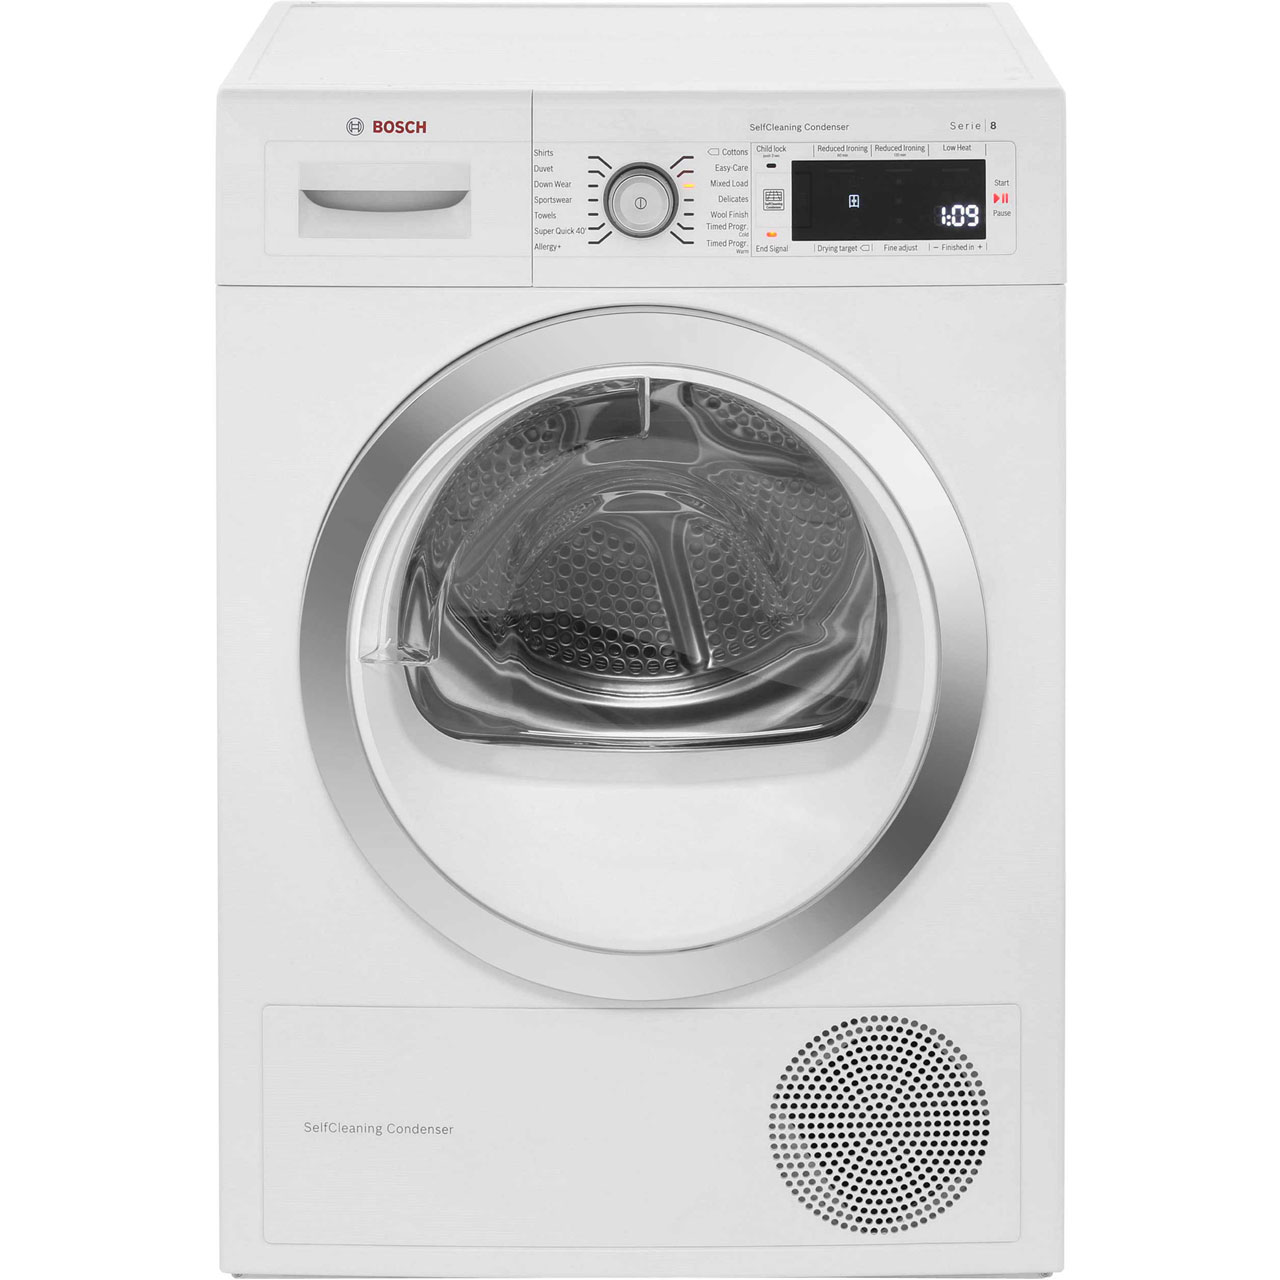 bosch condenser tumble dryer shop for cheap tumble dryers and save online. Black Bedroom Furniture Sets. Home Design Ideas